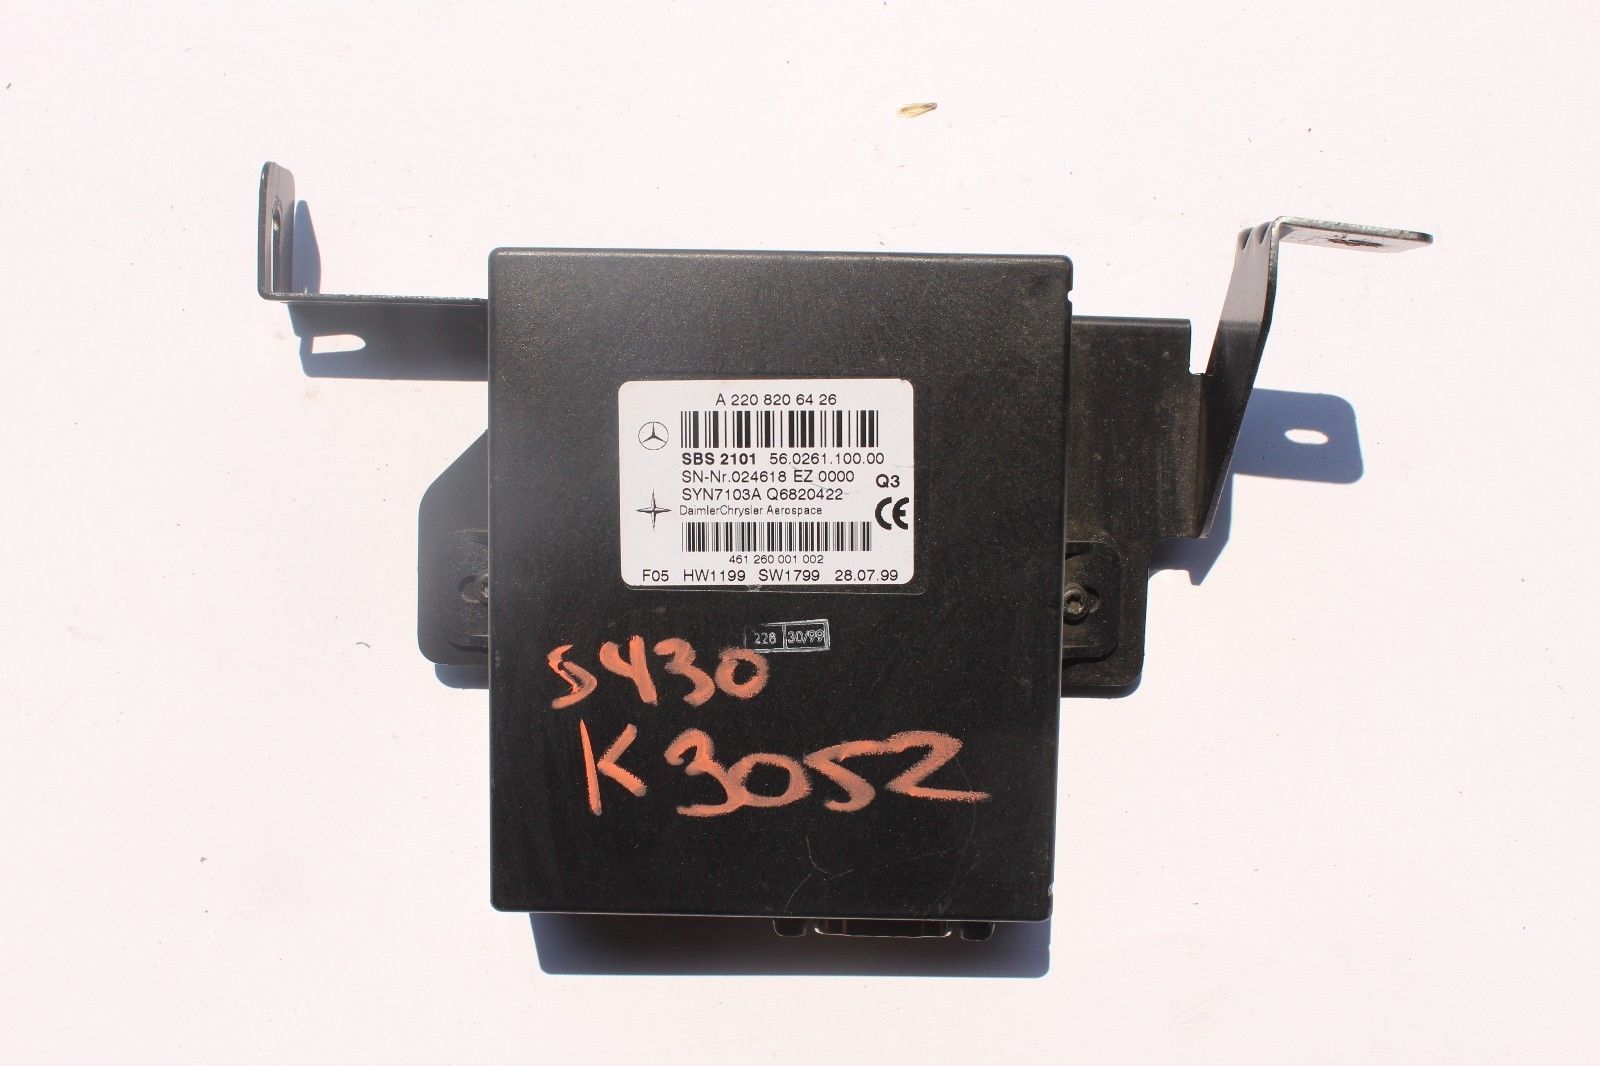 Primary image for 2000-2006 MERCEDES BENZ W220 S430 S500 VOICE COMMUNICATION CONTROL MODULE K3052